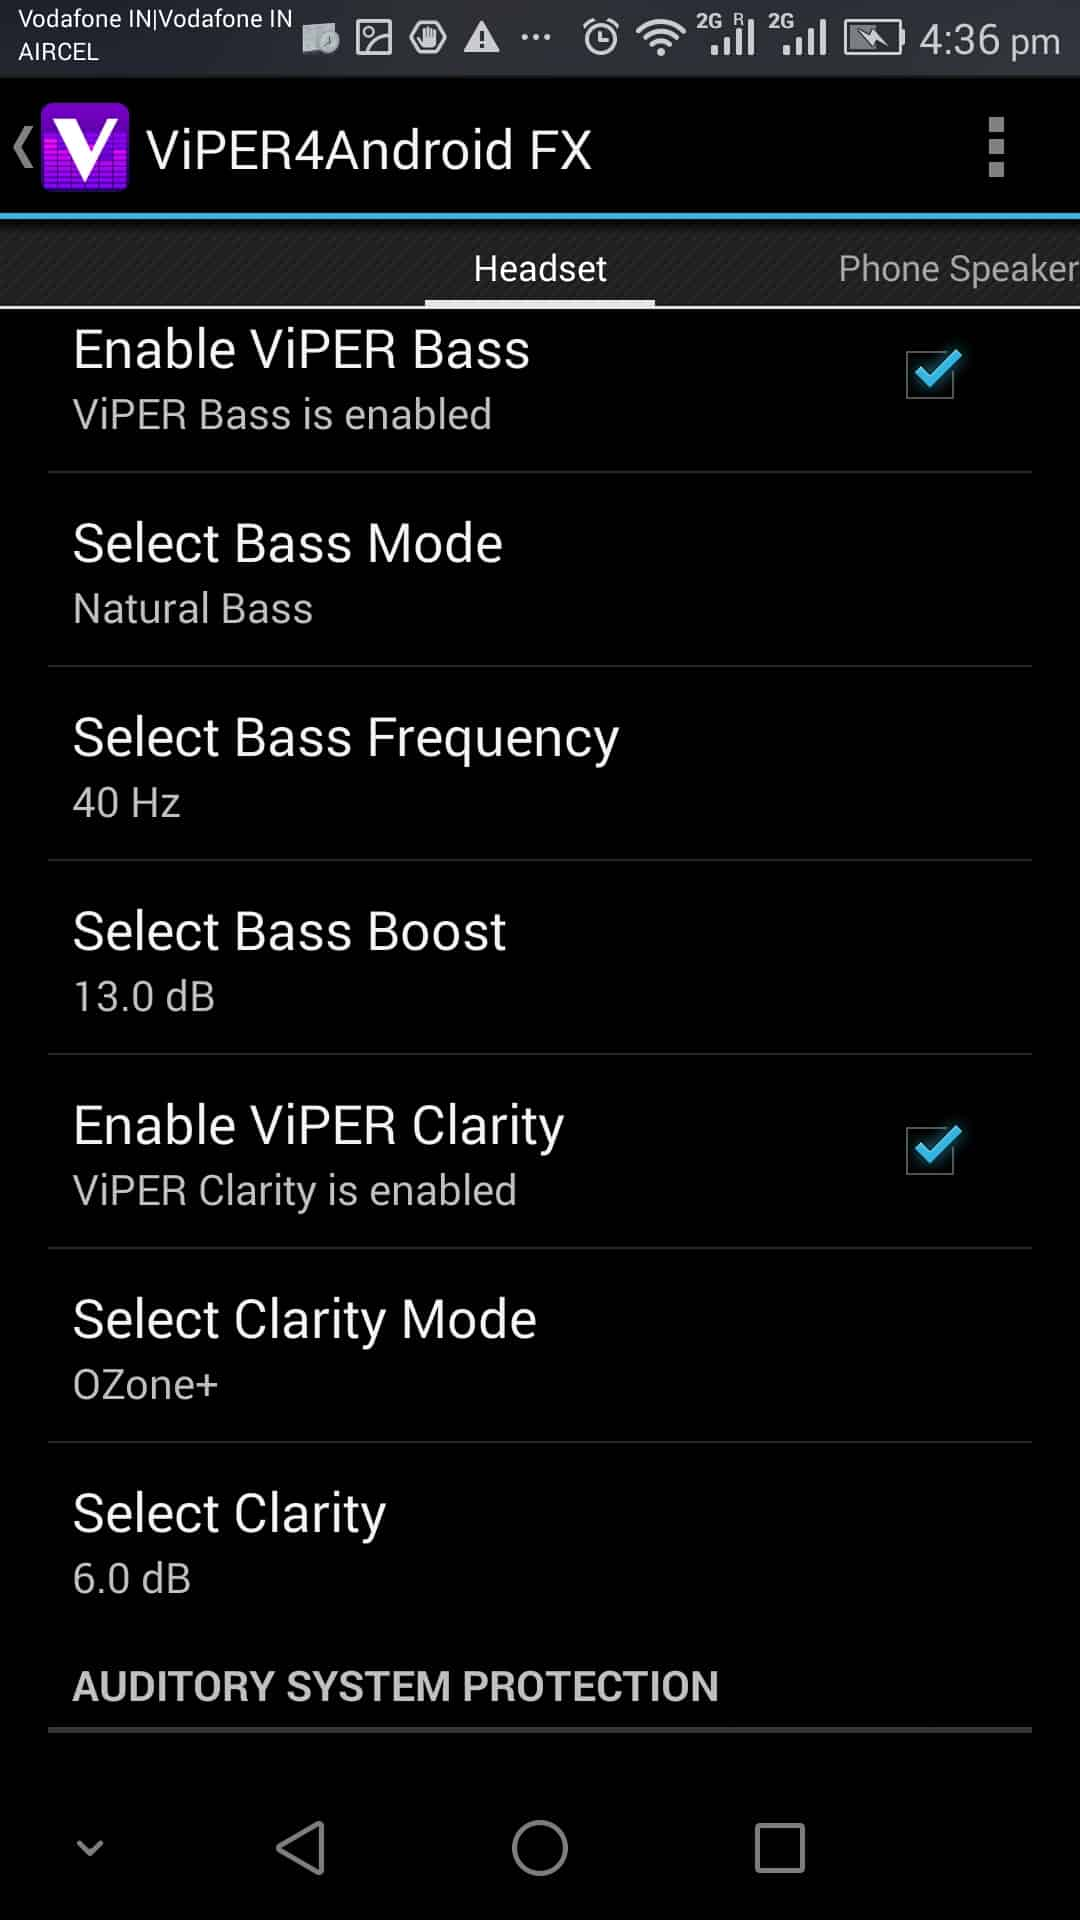 screenshot 2015 01 21 16 36 54 576x1024 viper4android with powerampaudio effects for